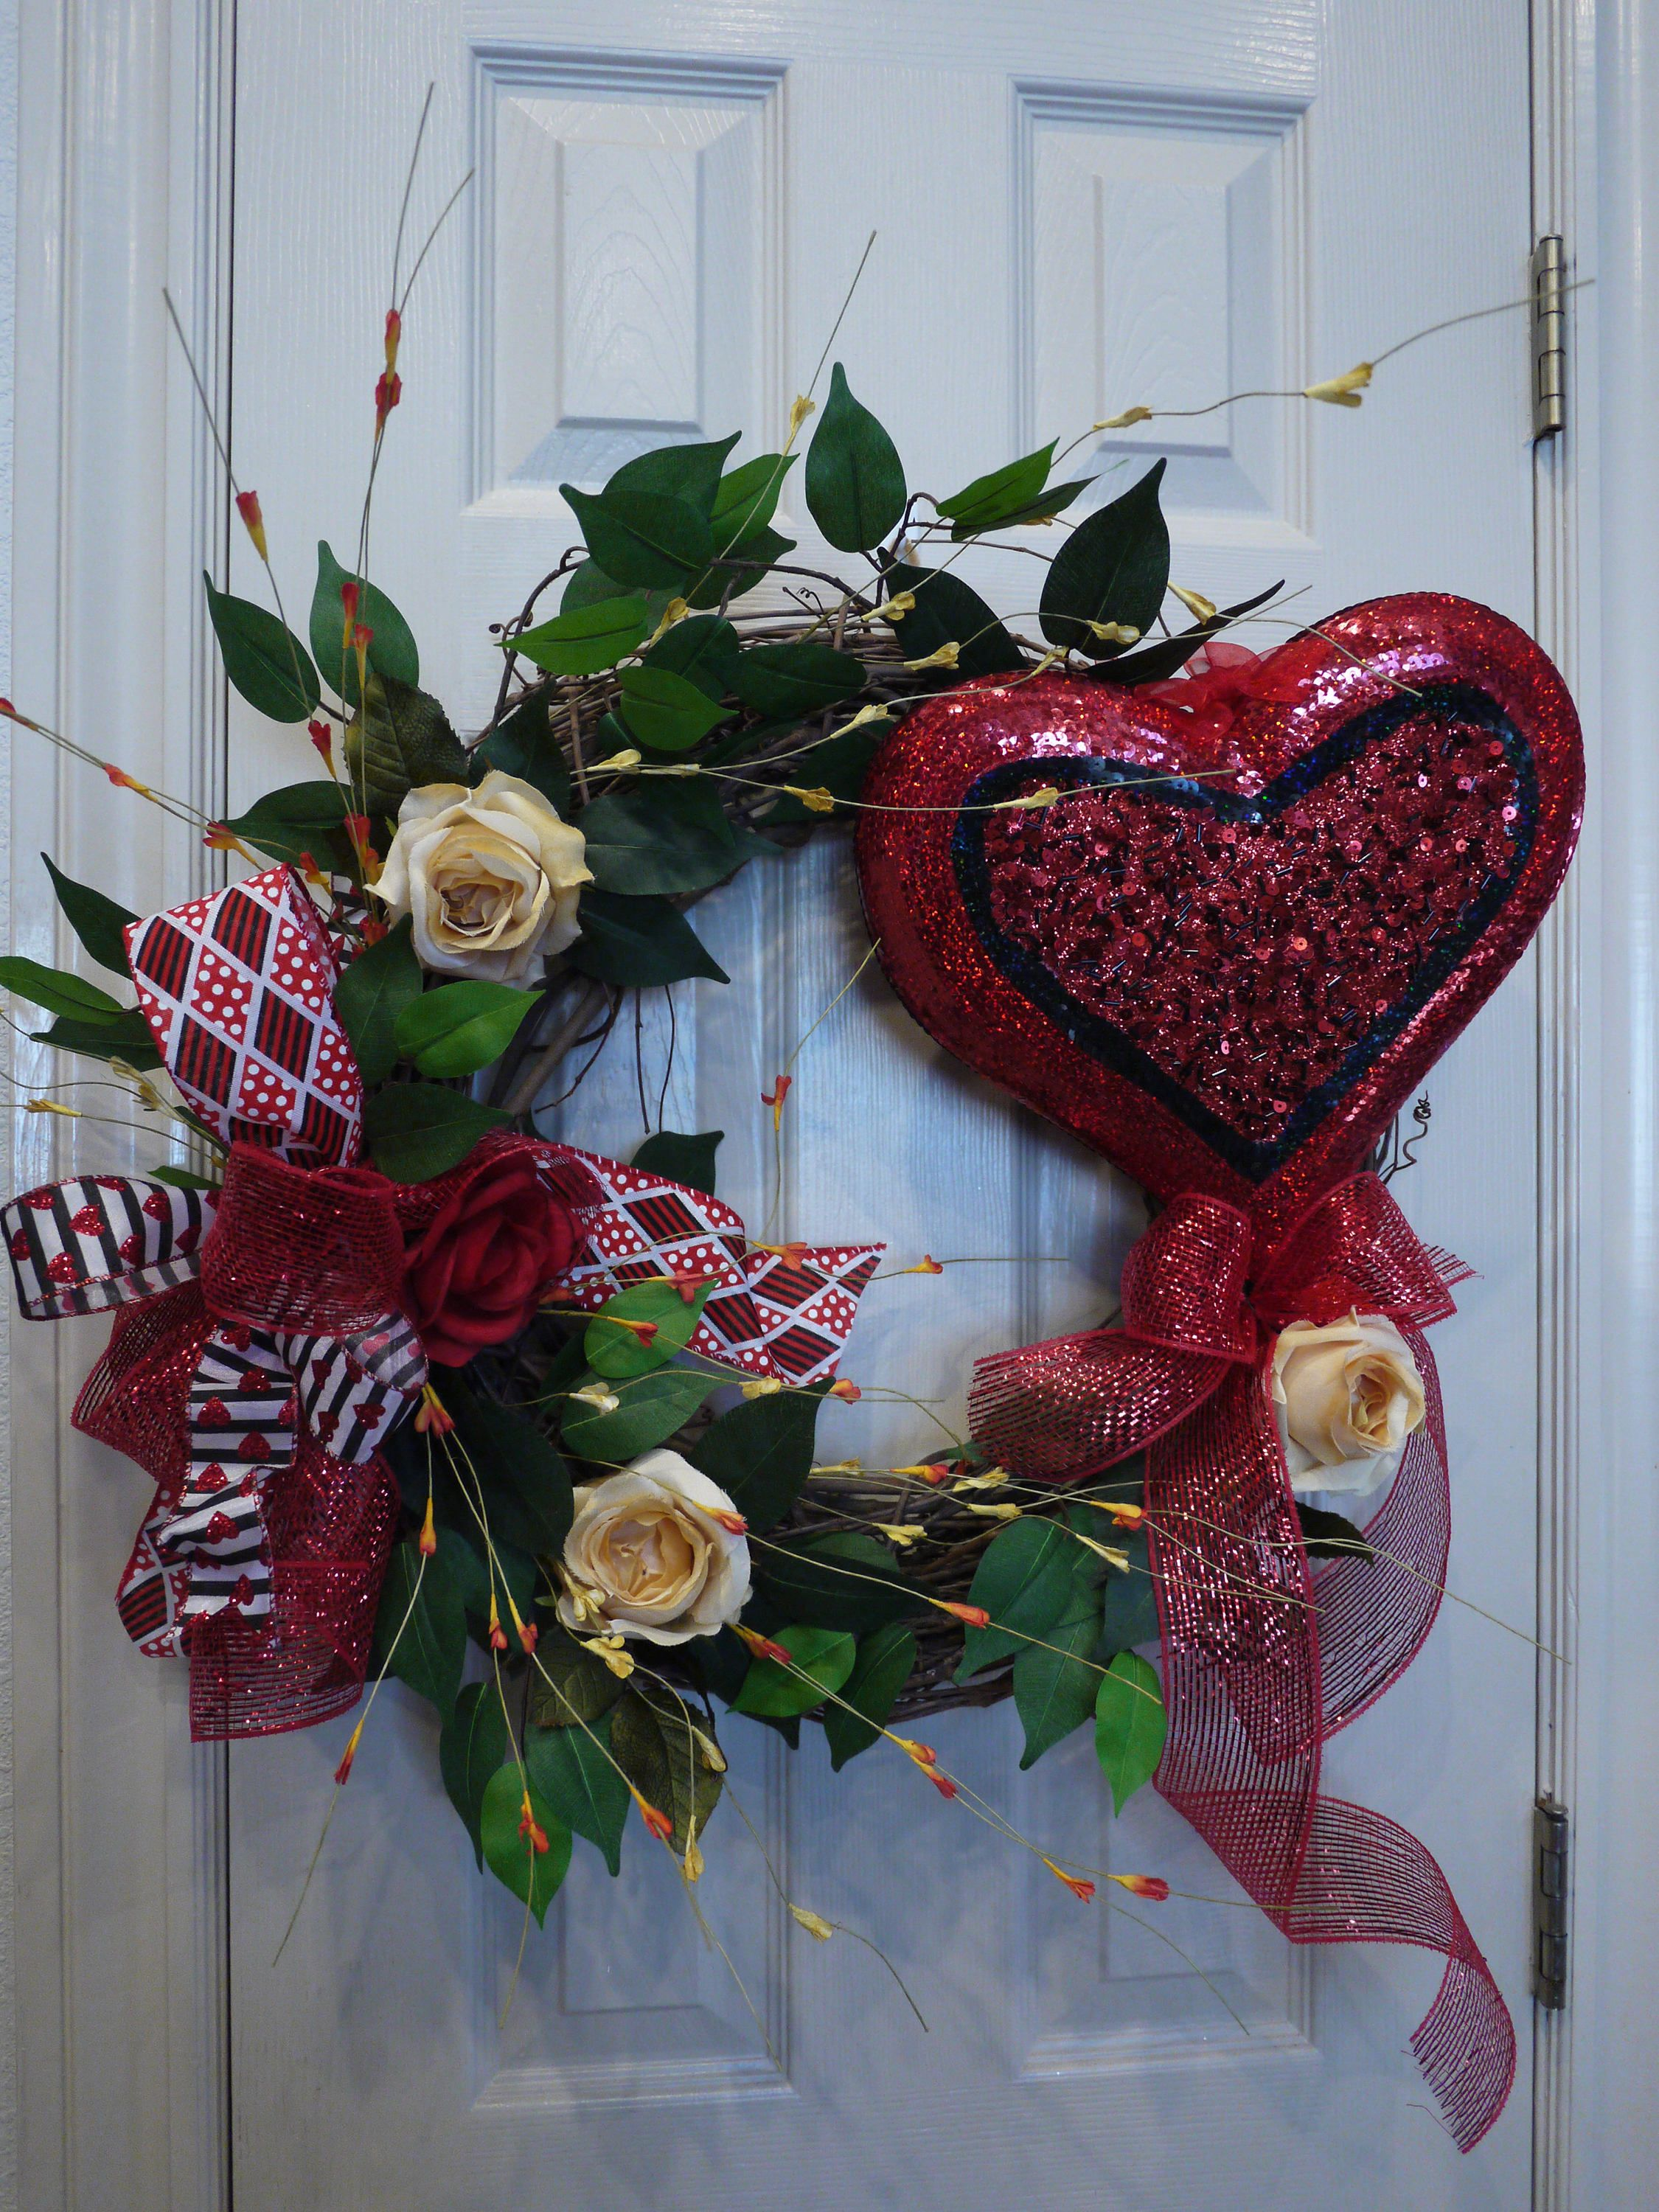 Valentine Grapevine Heart Wreath Wreath Grapevine Wreath Etsy Valentine Wreath Valentine Decorations Valentine Day Wreaths